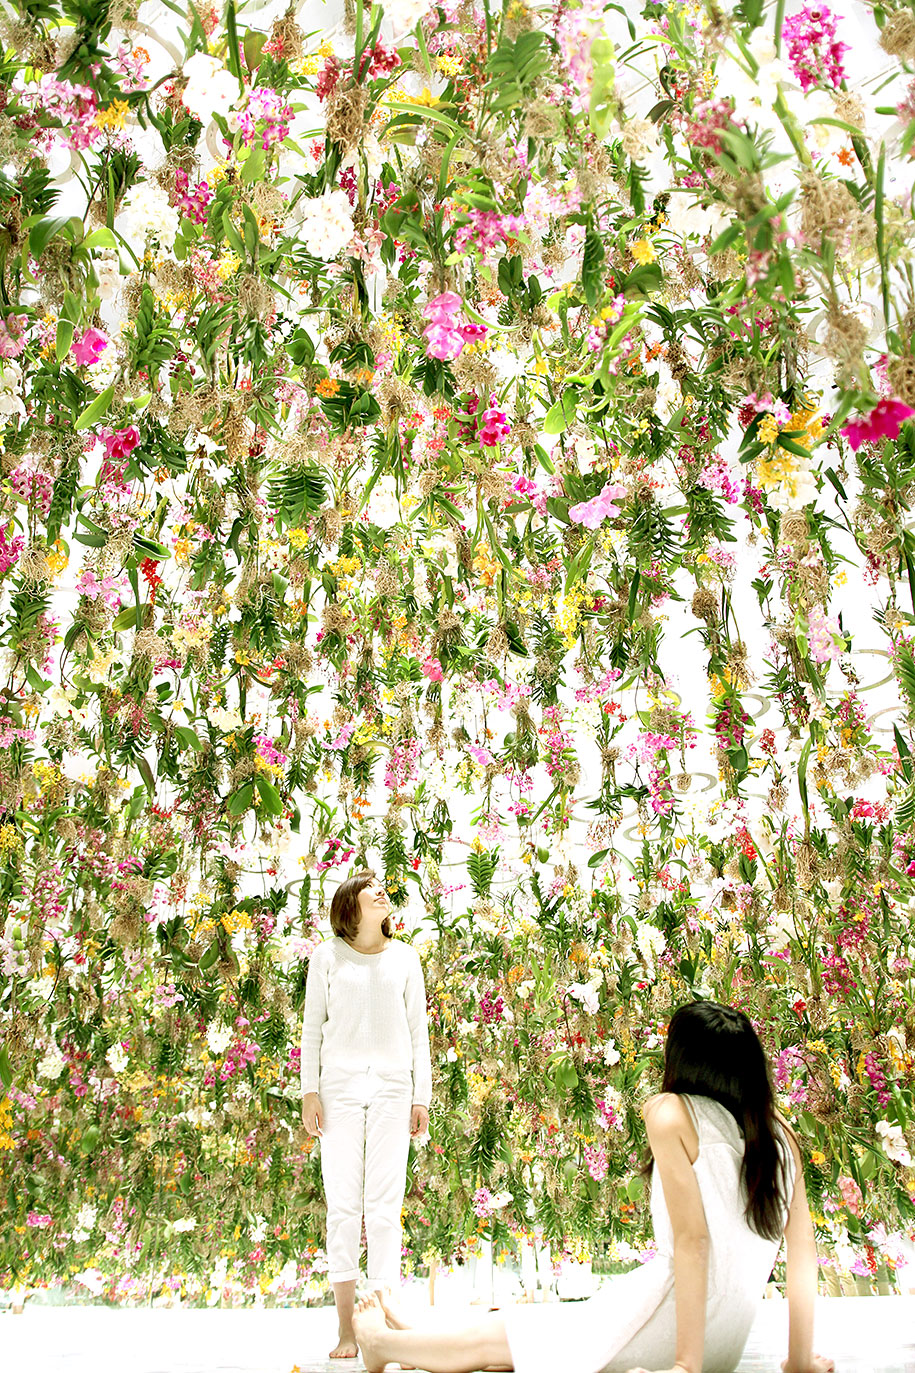 modern-mechanized-floating-flower-garden-teamlab-13